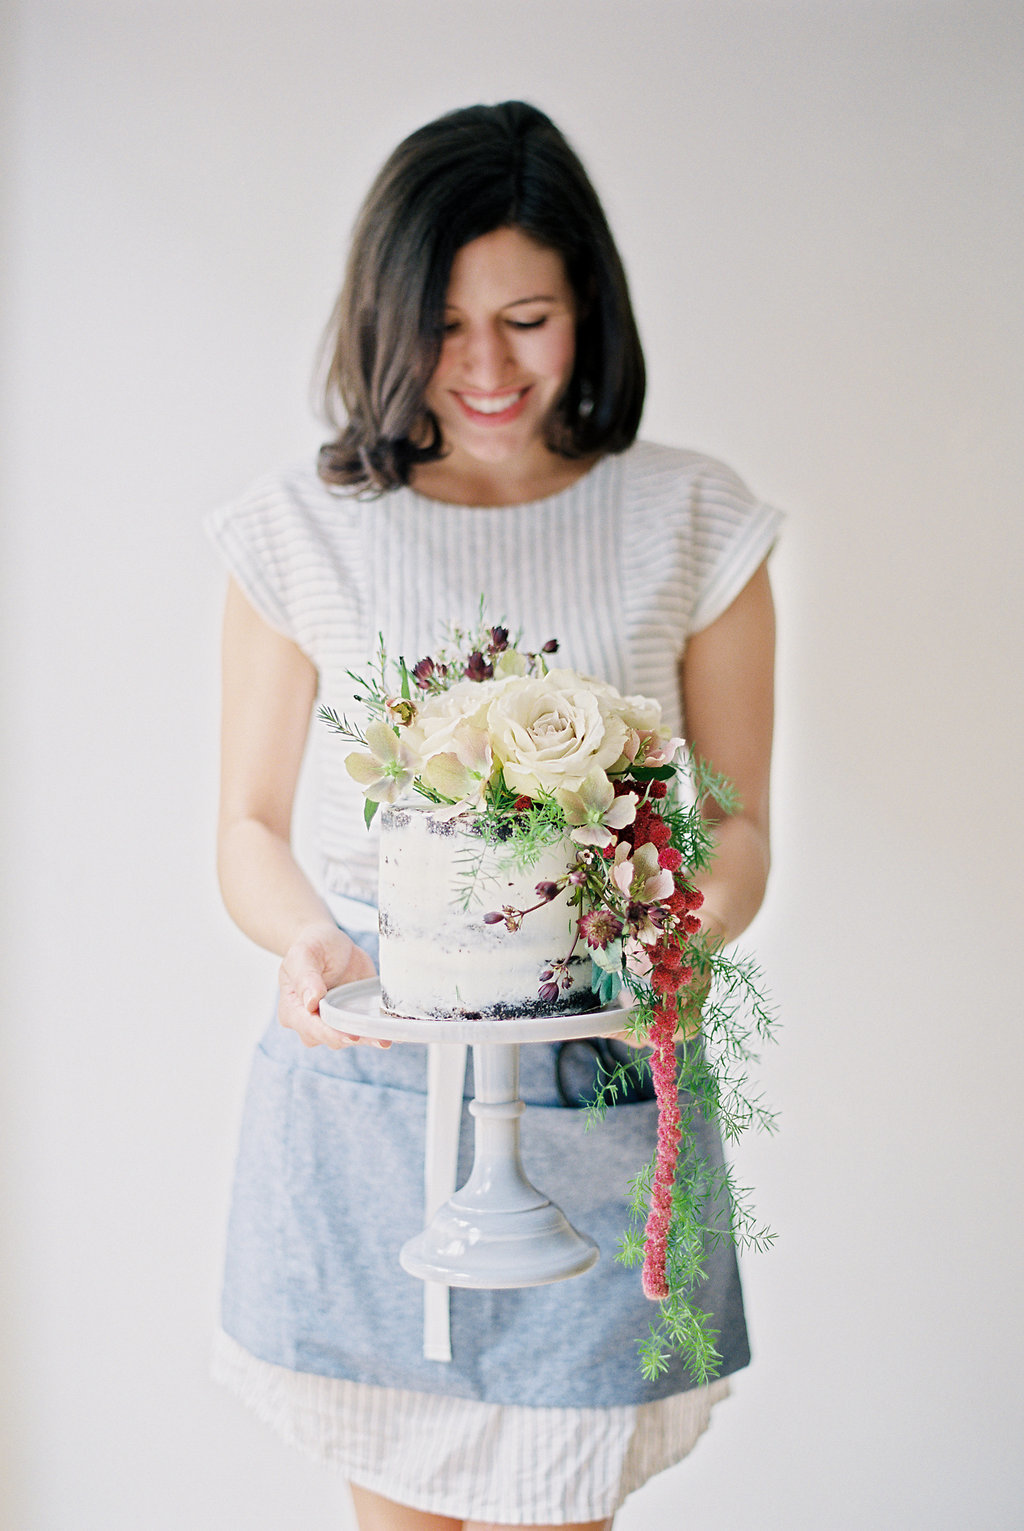 the-makers-apron-melanie-gabrielle-photography-157